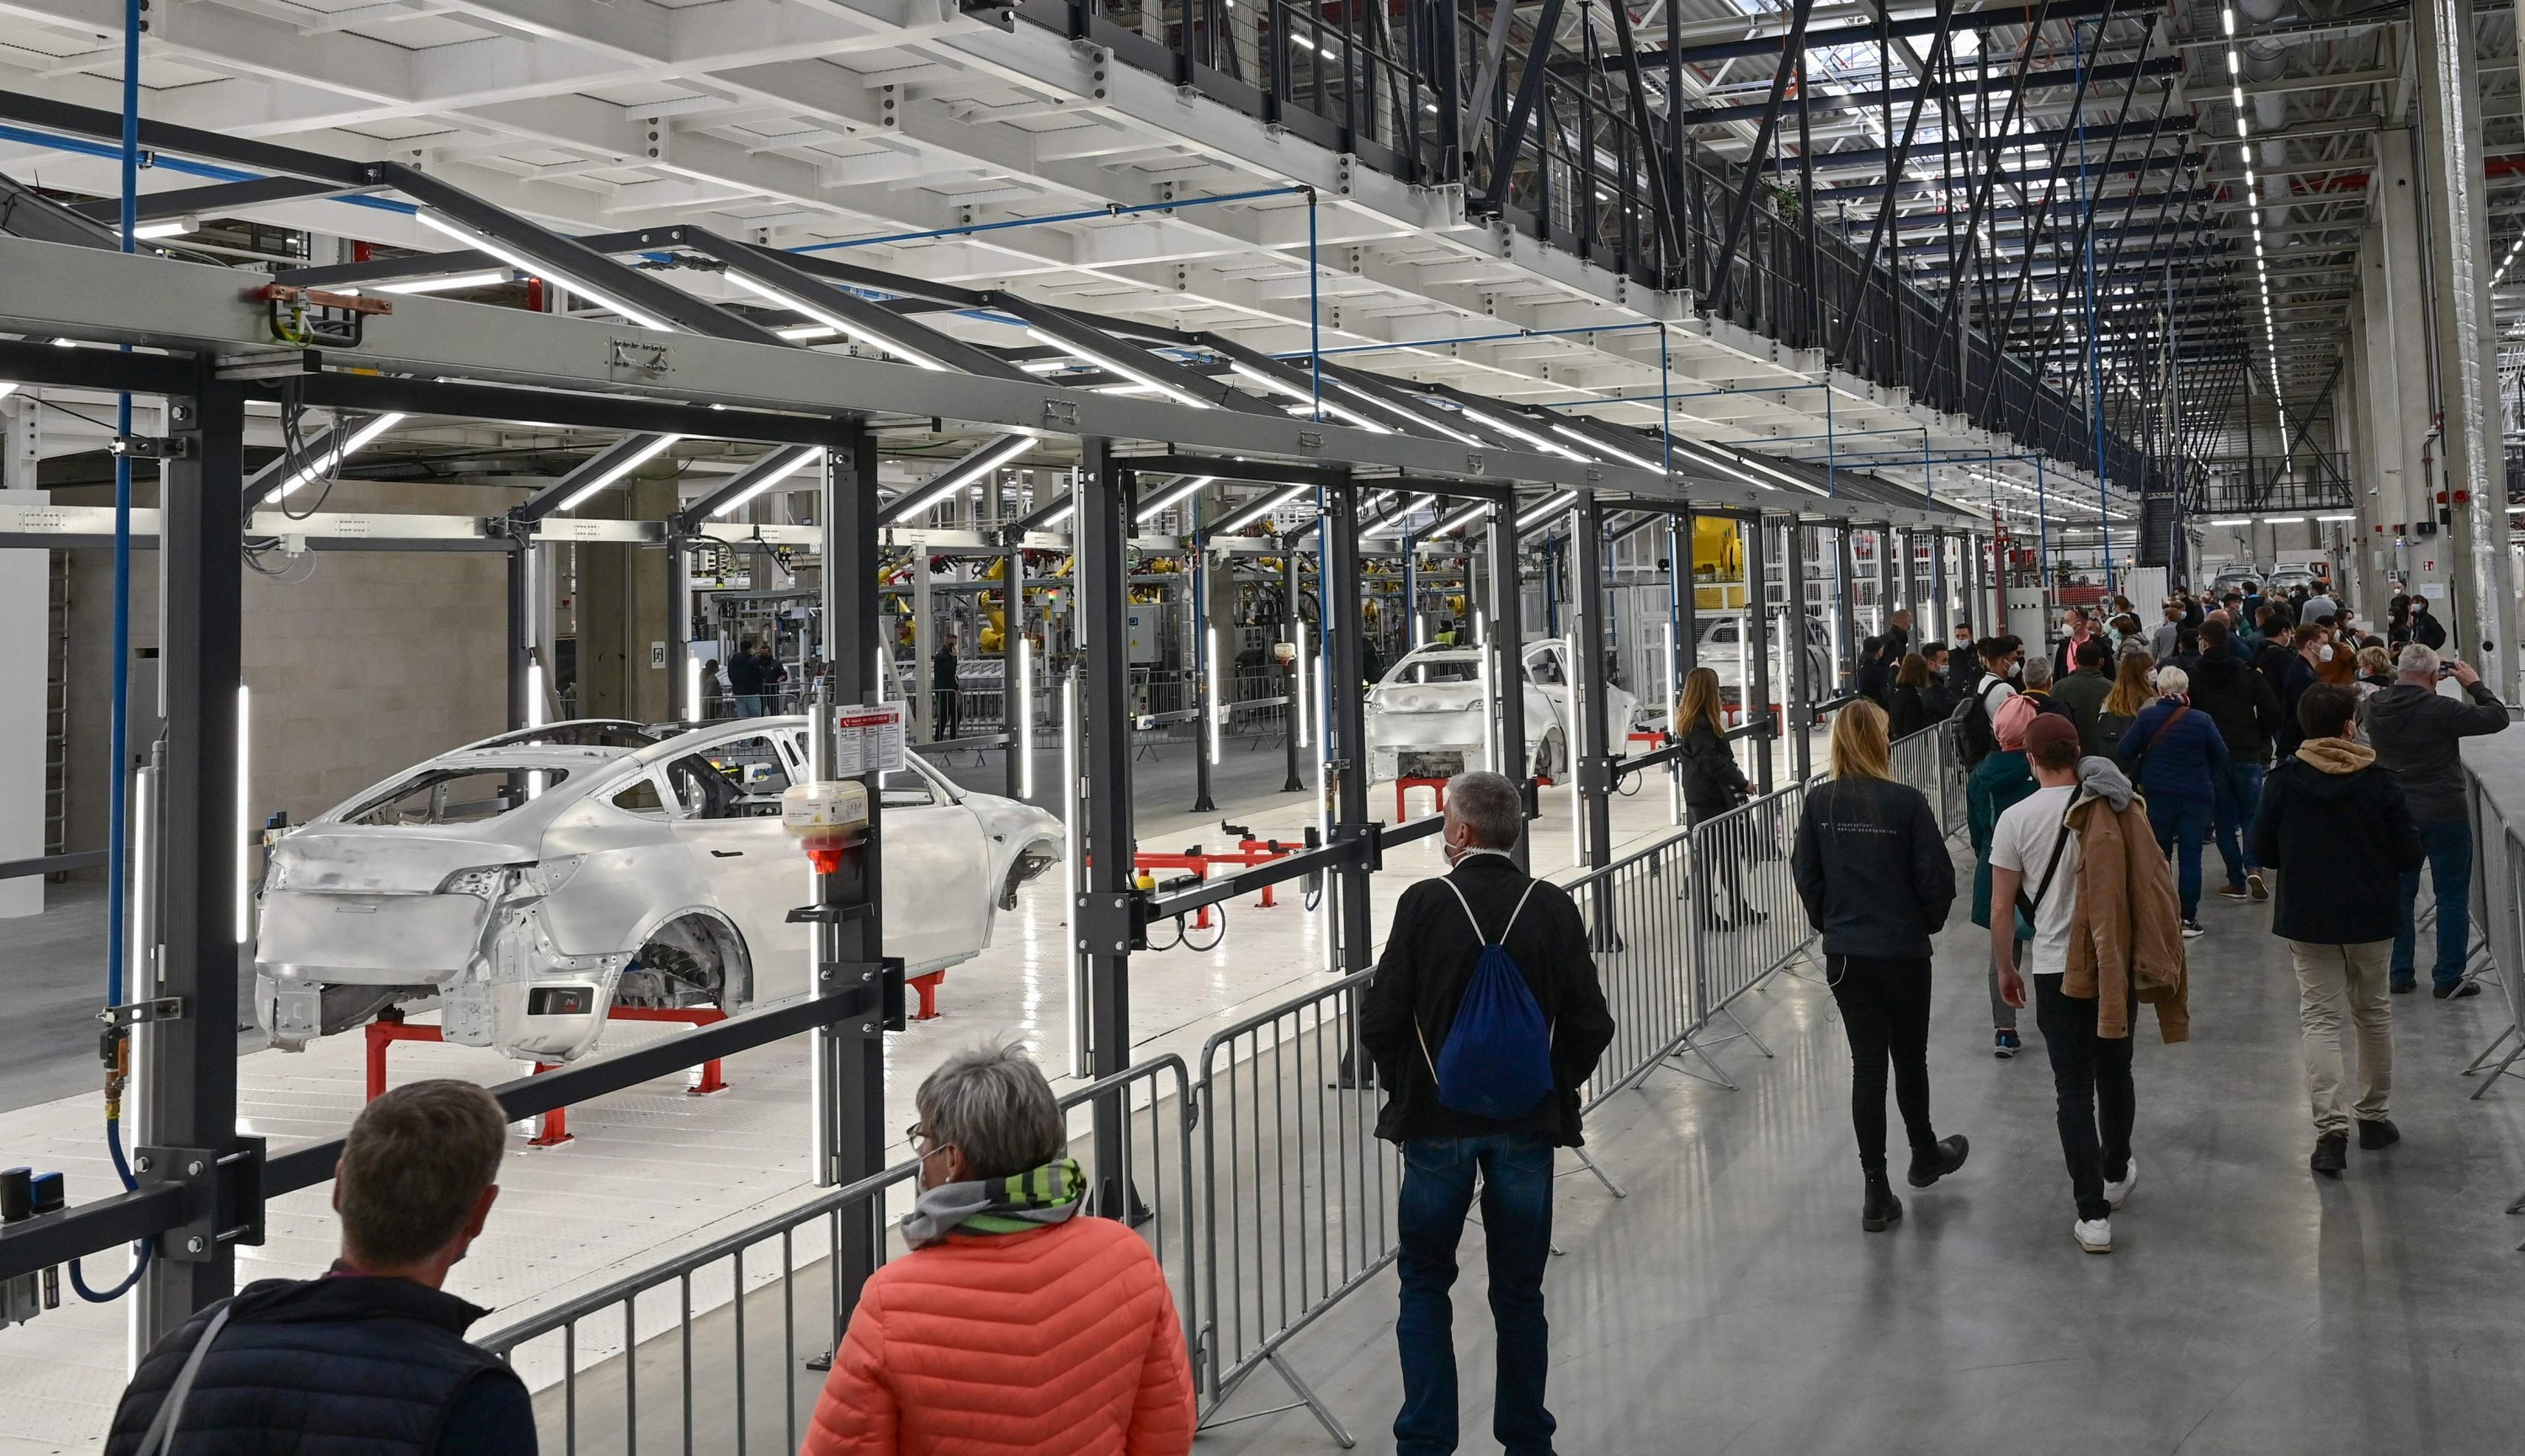 Visitors walk through a factory building during the opening of the Tesla Gigafactory in Gruenheide, east of Berlin, Germany, Oct. 9, 2021. (AFP Photo)